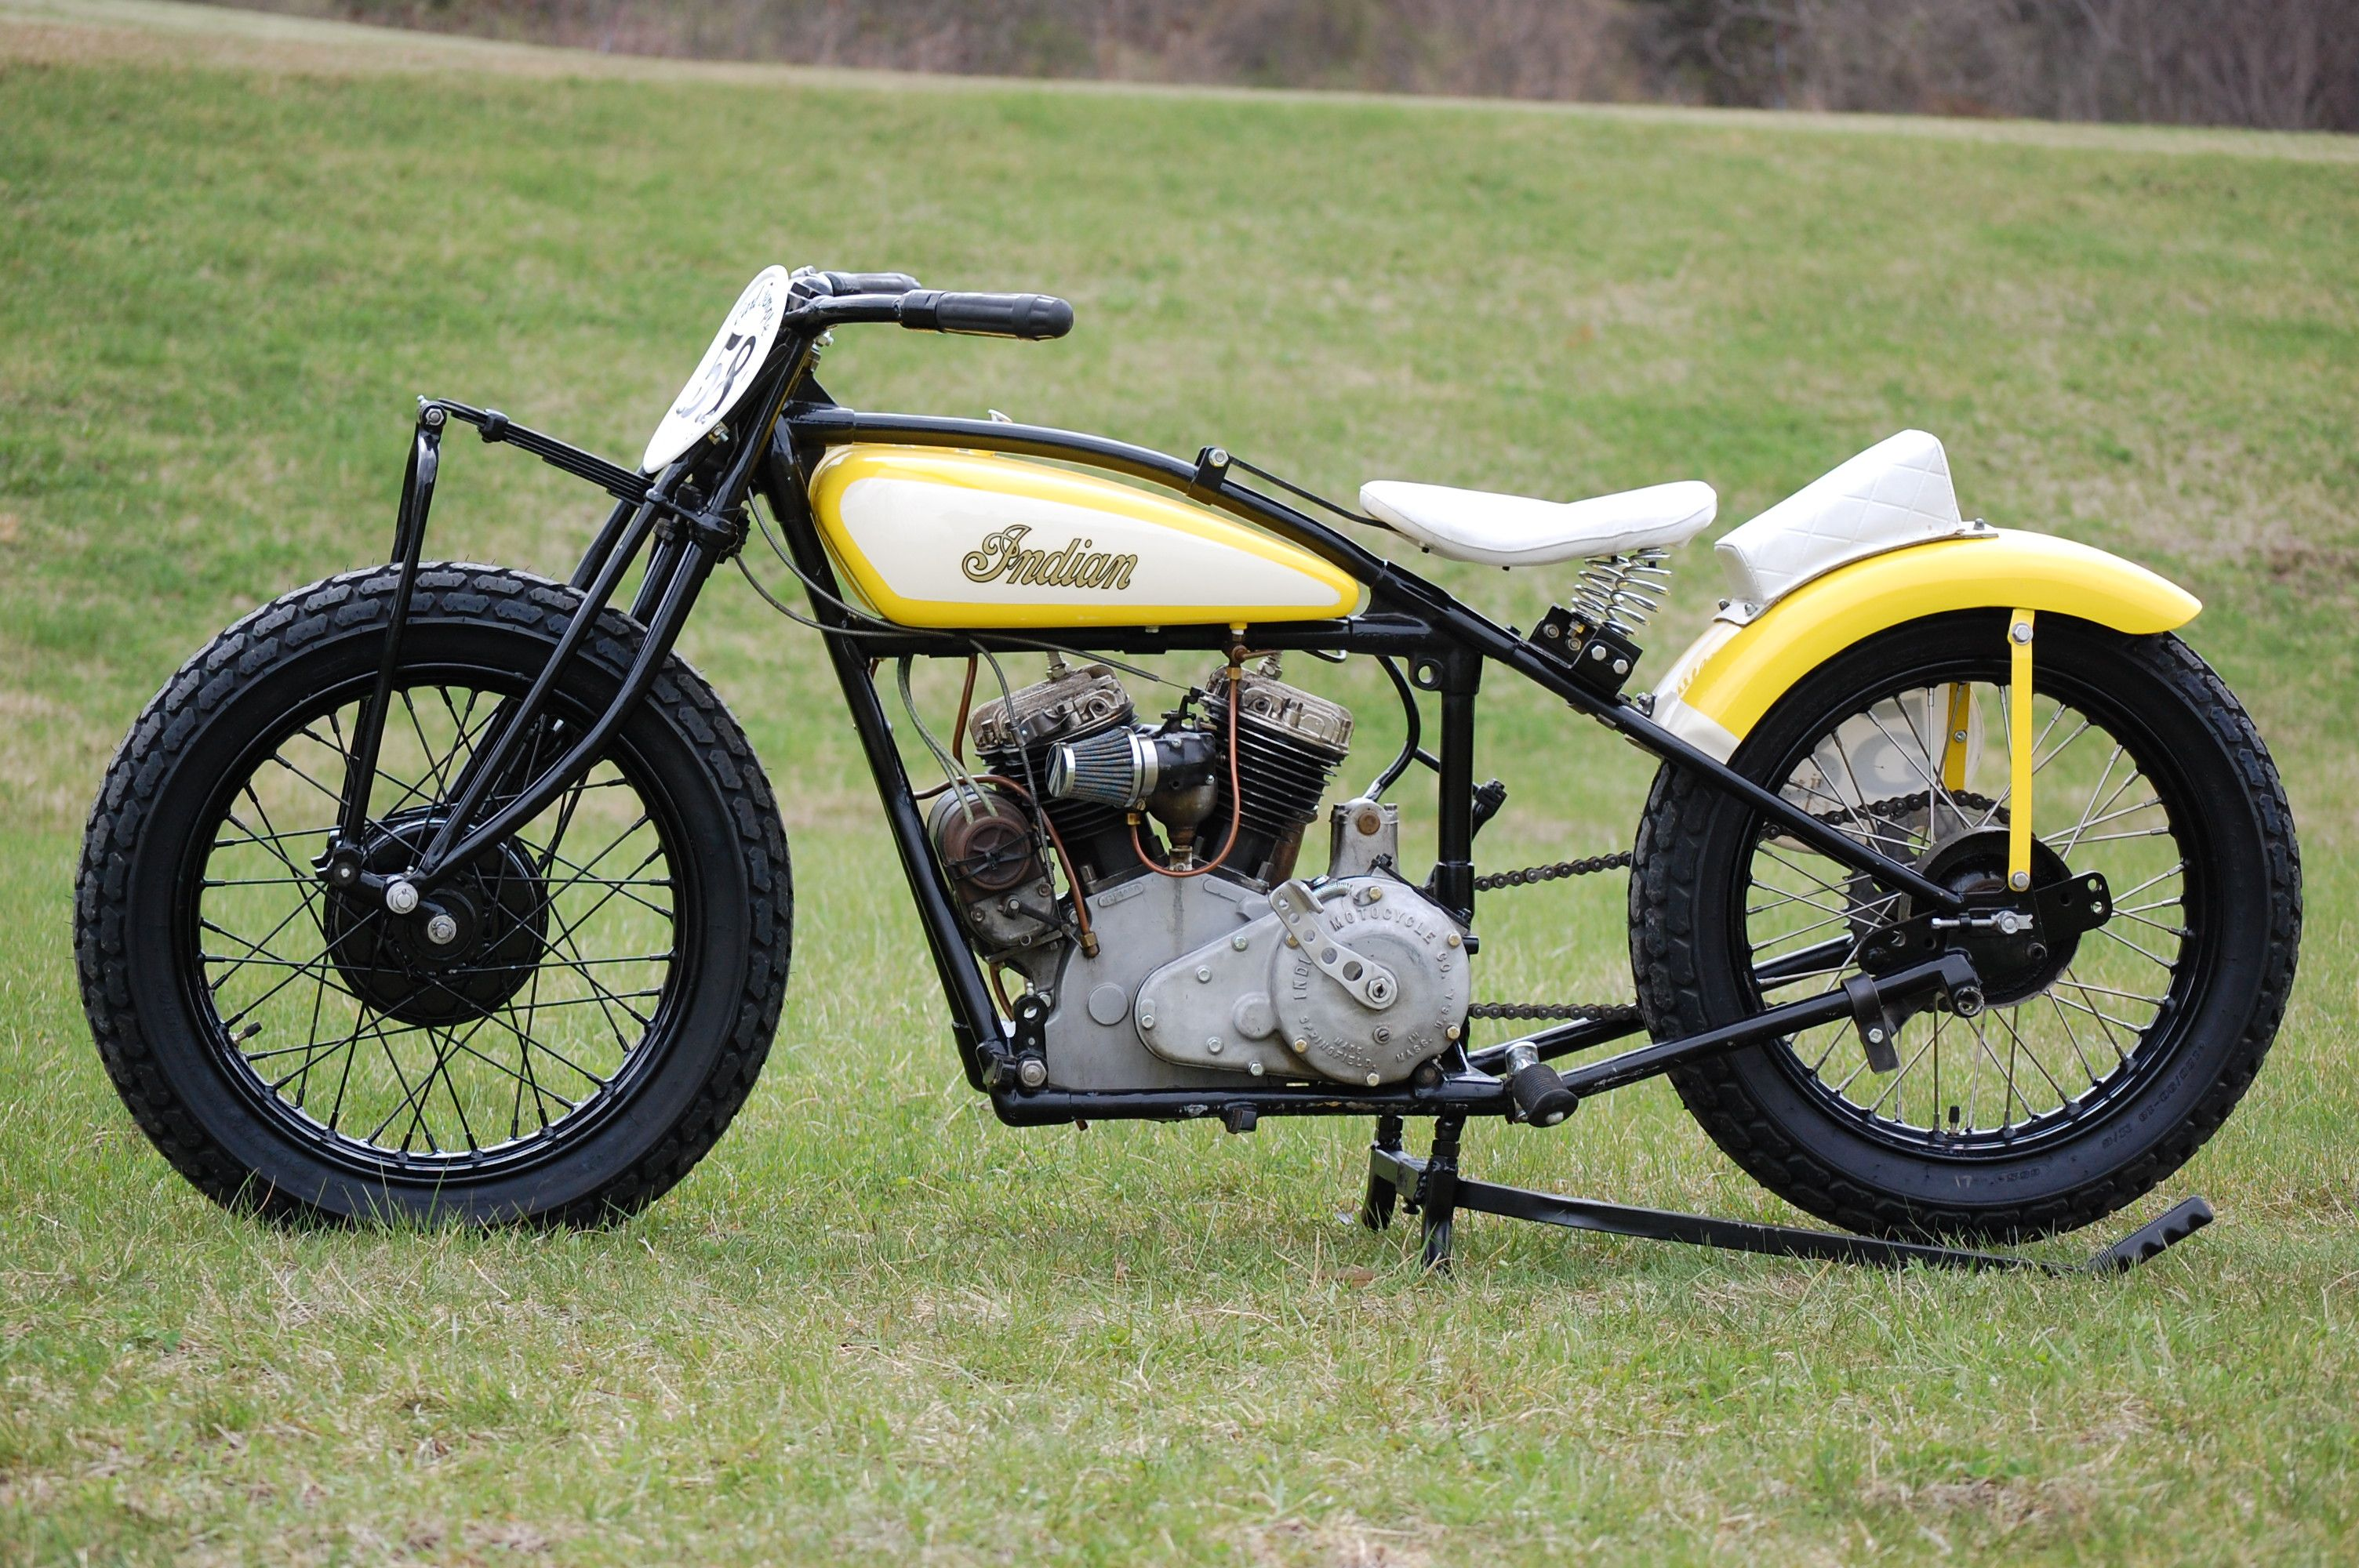 Vintage flat track racing motorcycles 1931 indian 101 scout